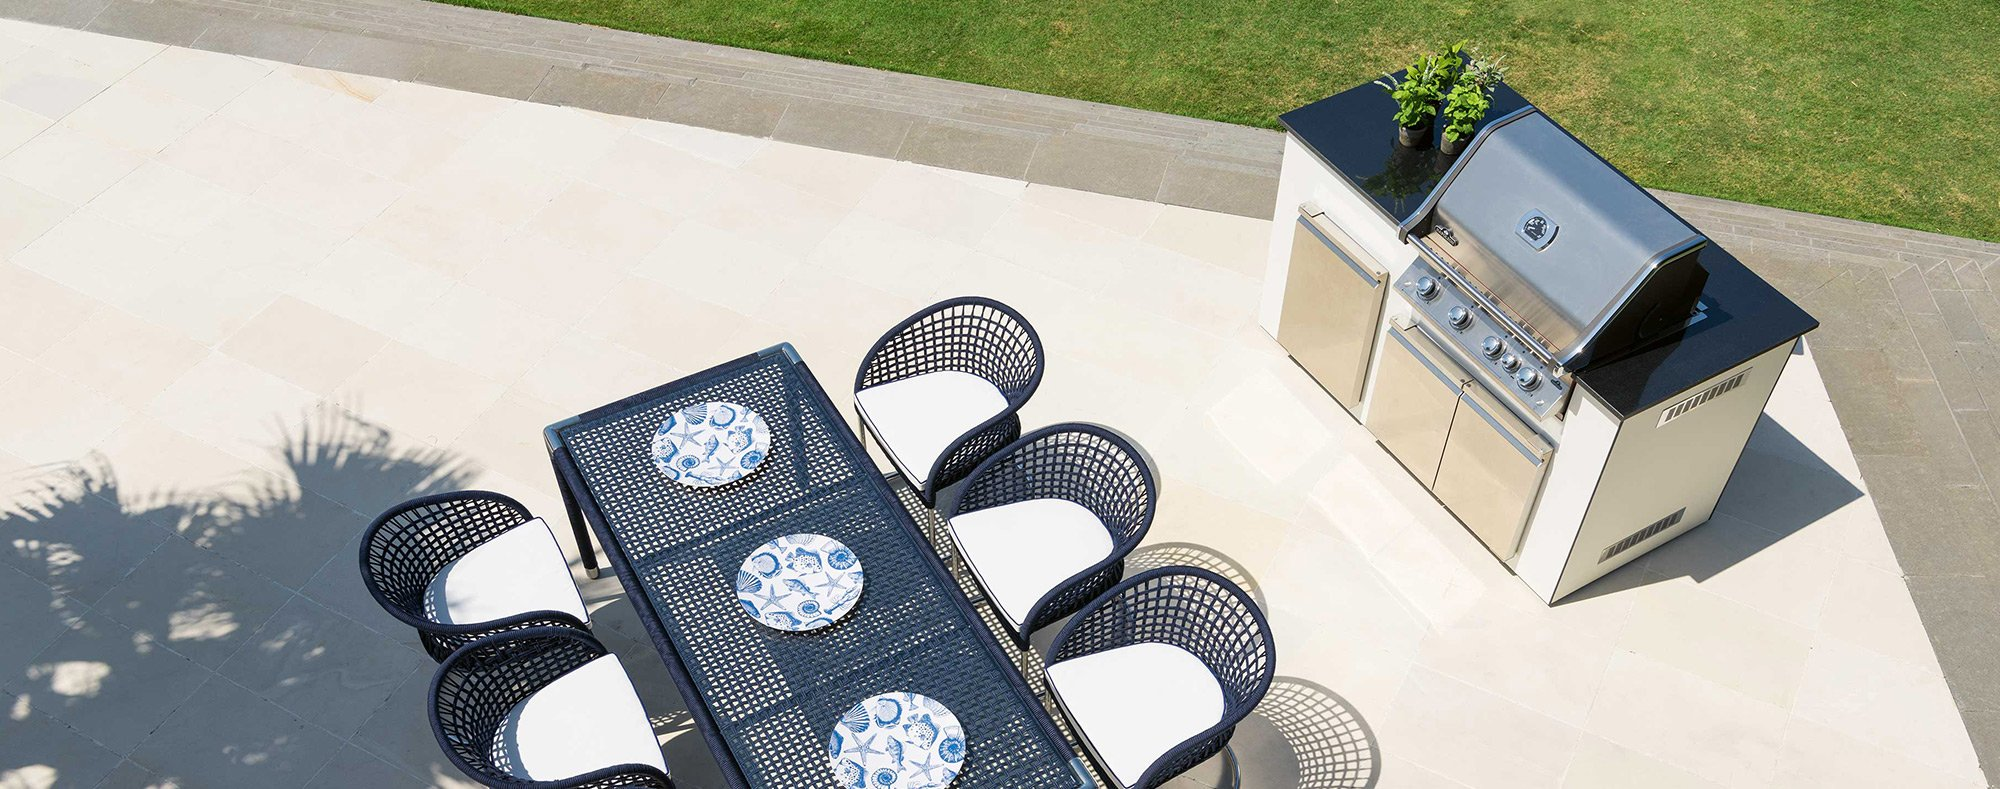 Outdoor dining tables and grill